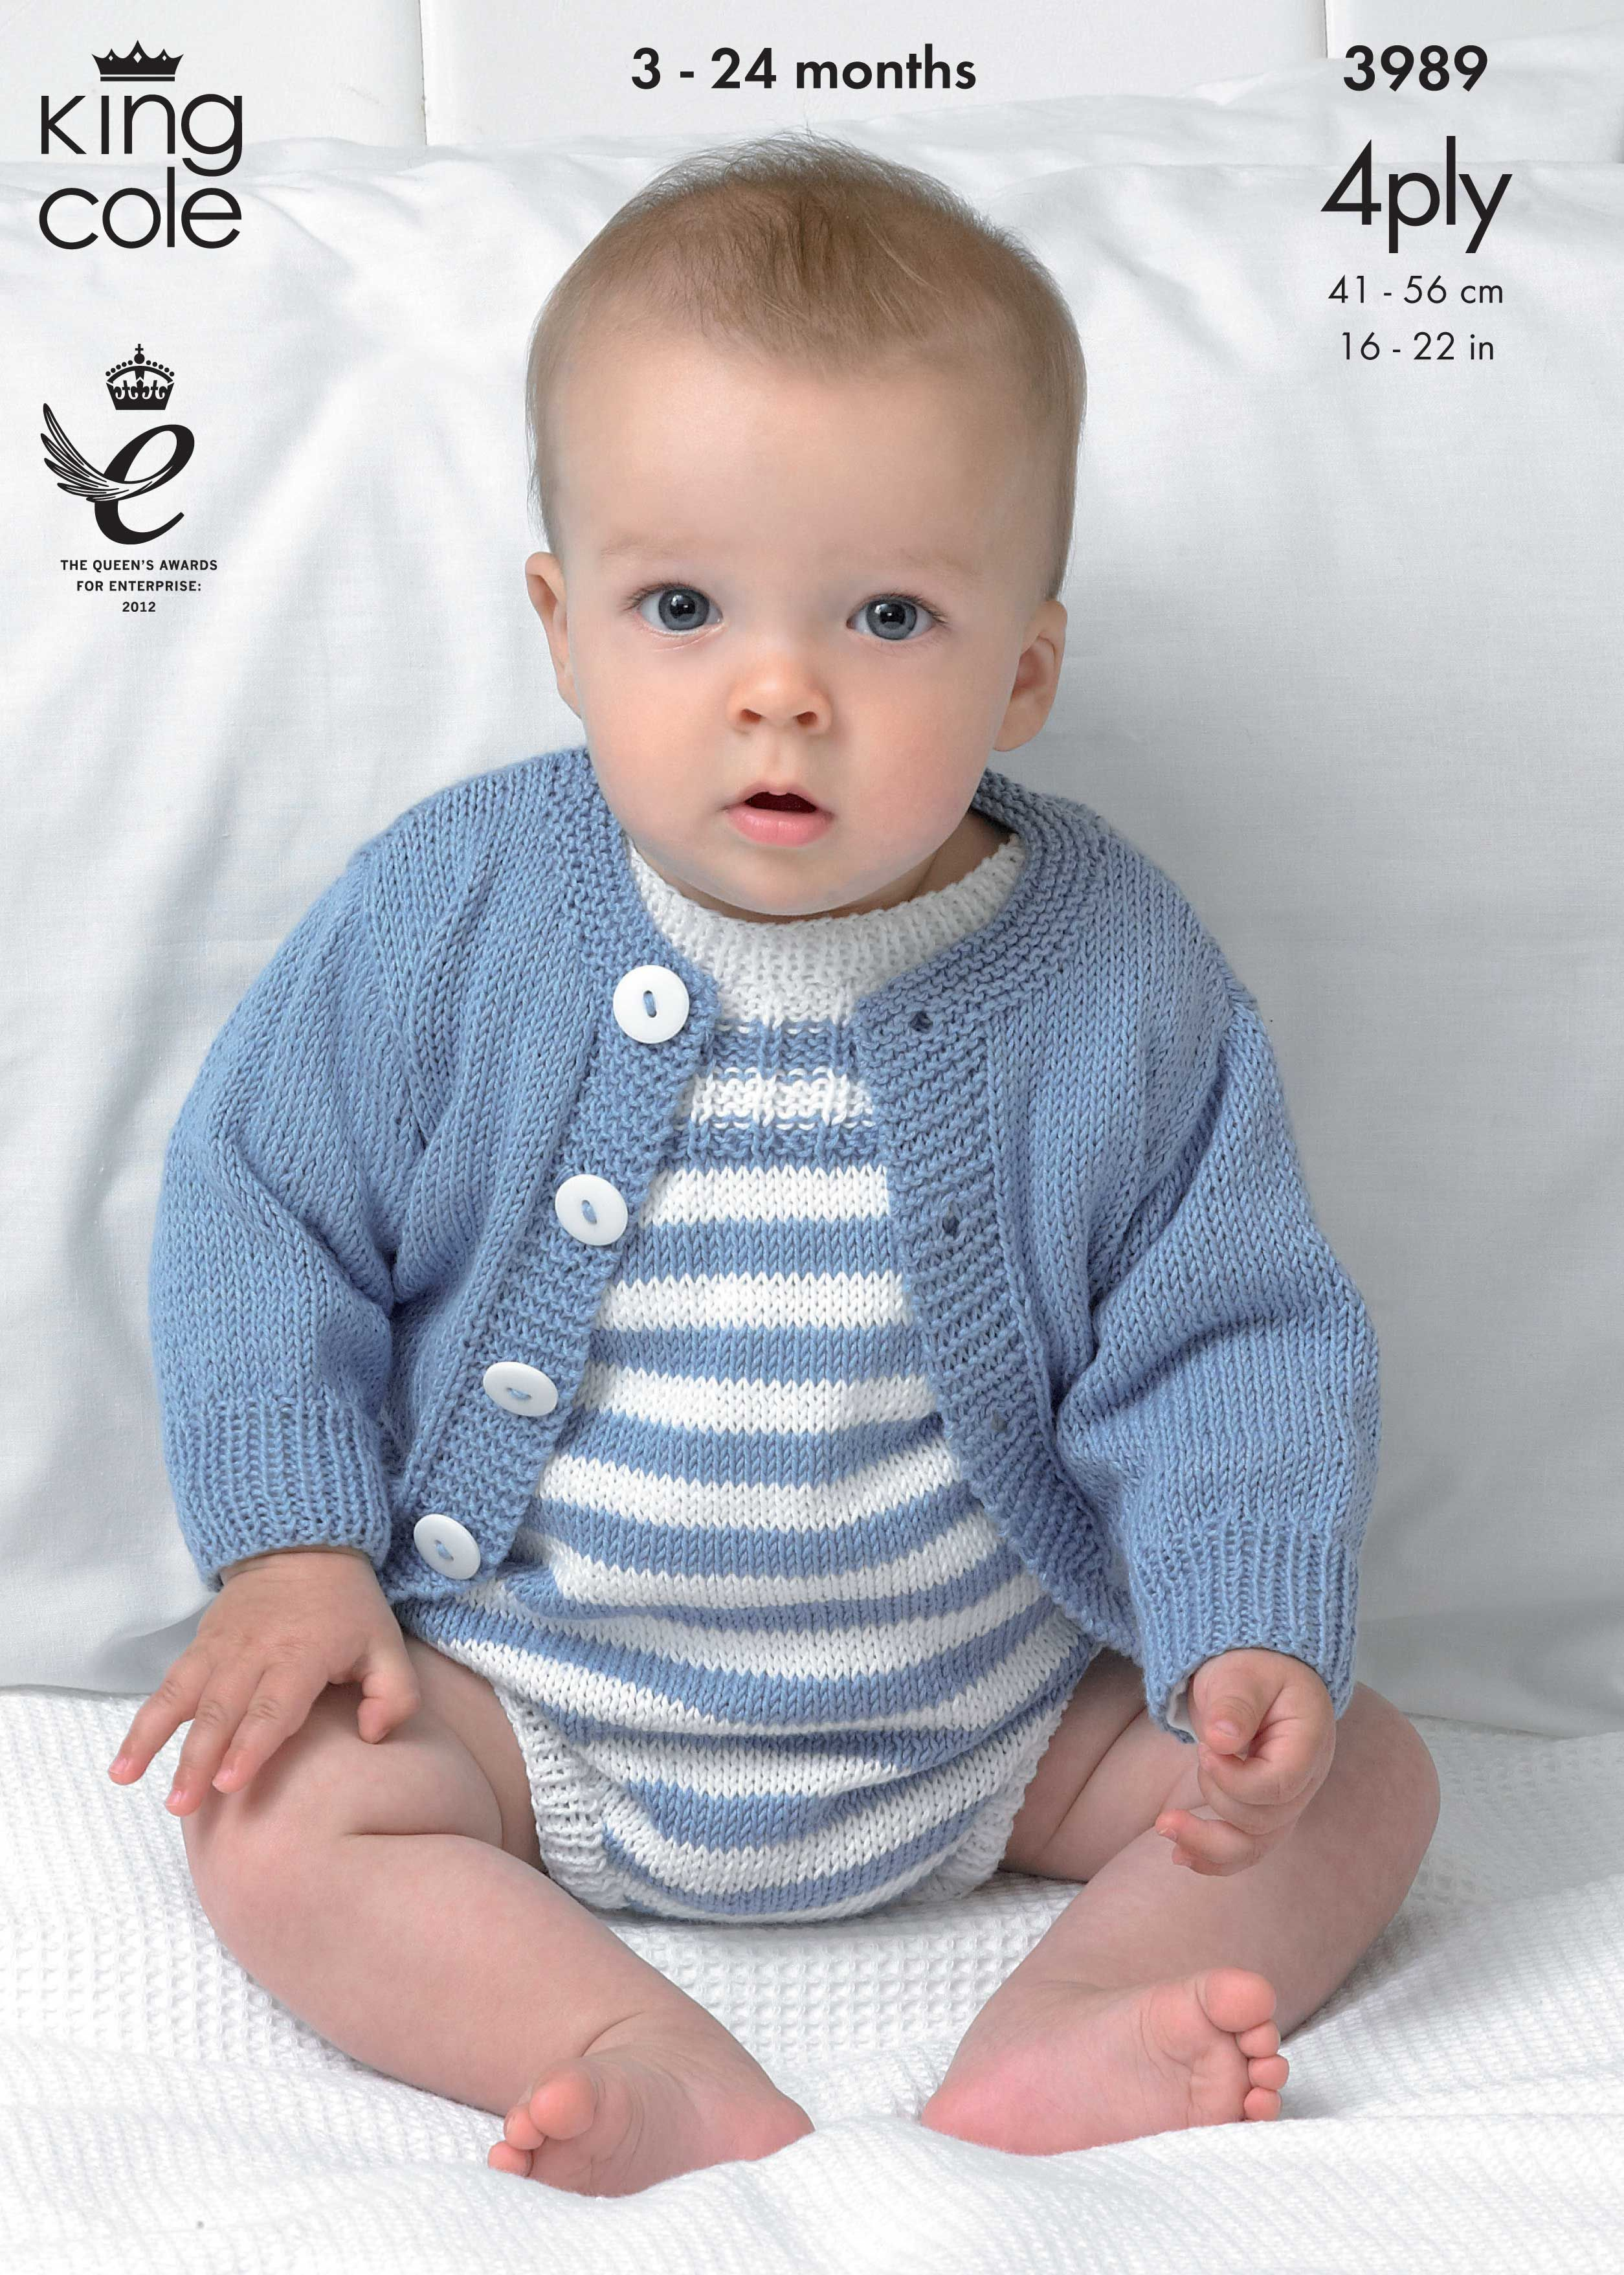 Cardigans and Romper Suit Knitted with Bamboo Cotton 4Ply ...